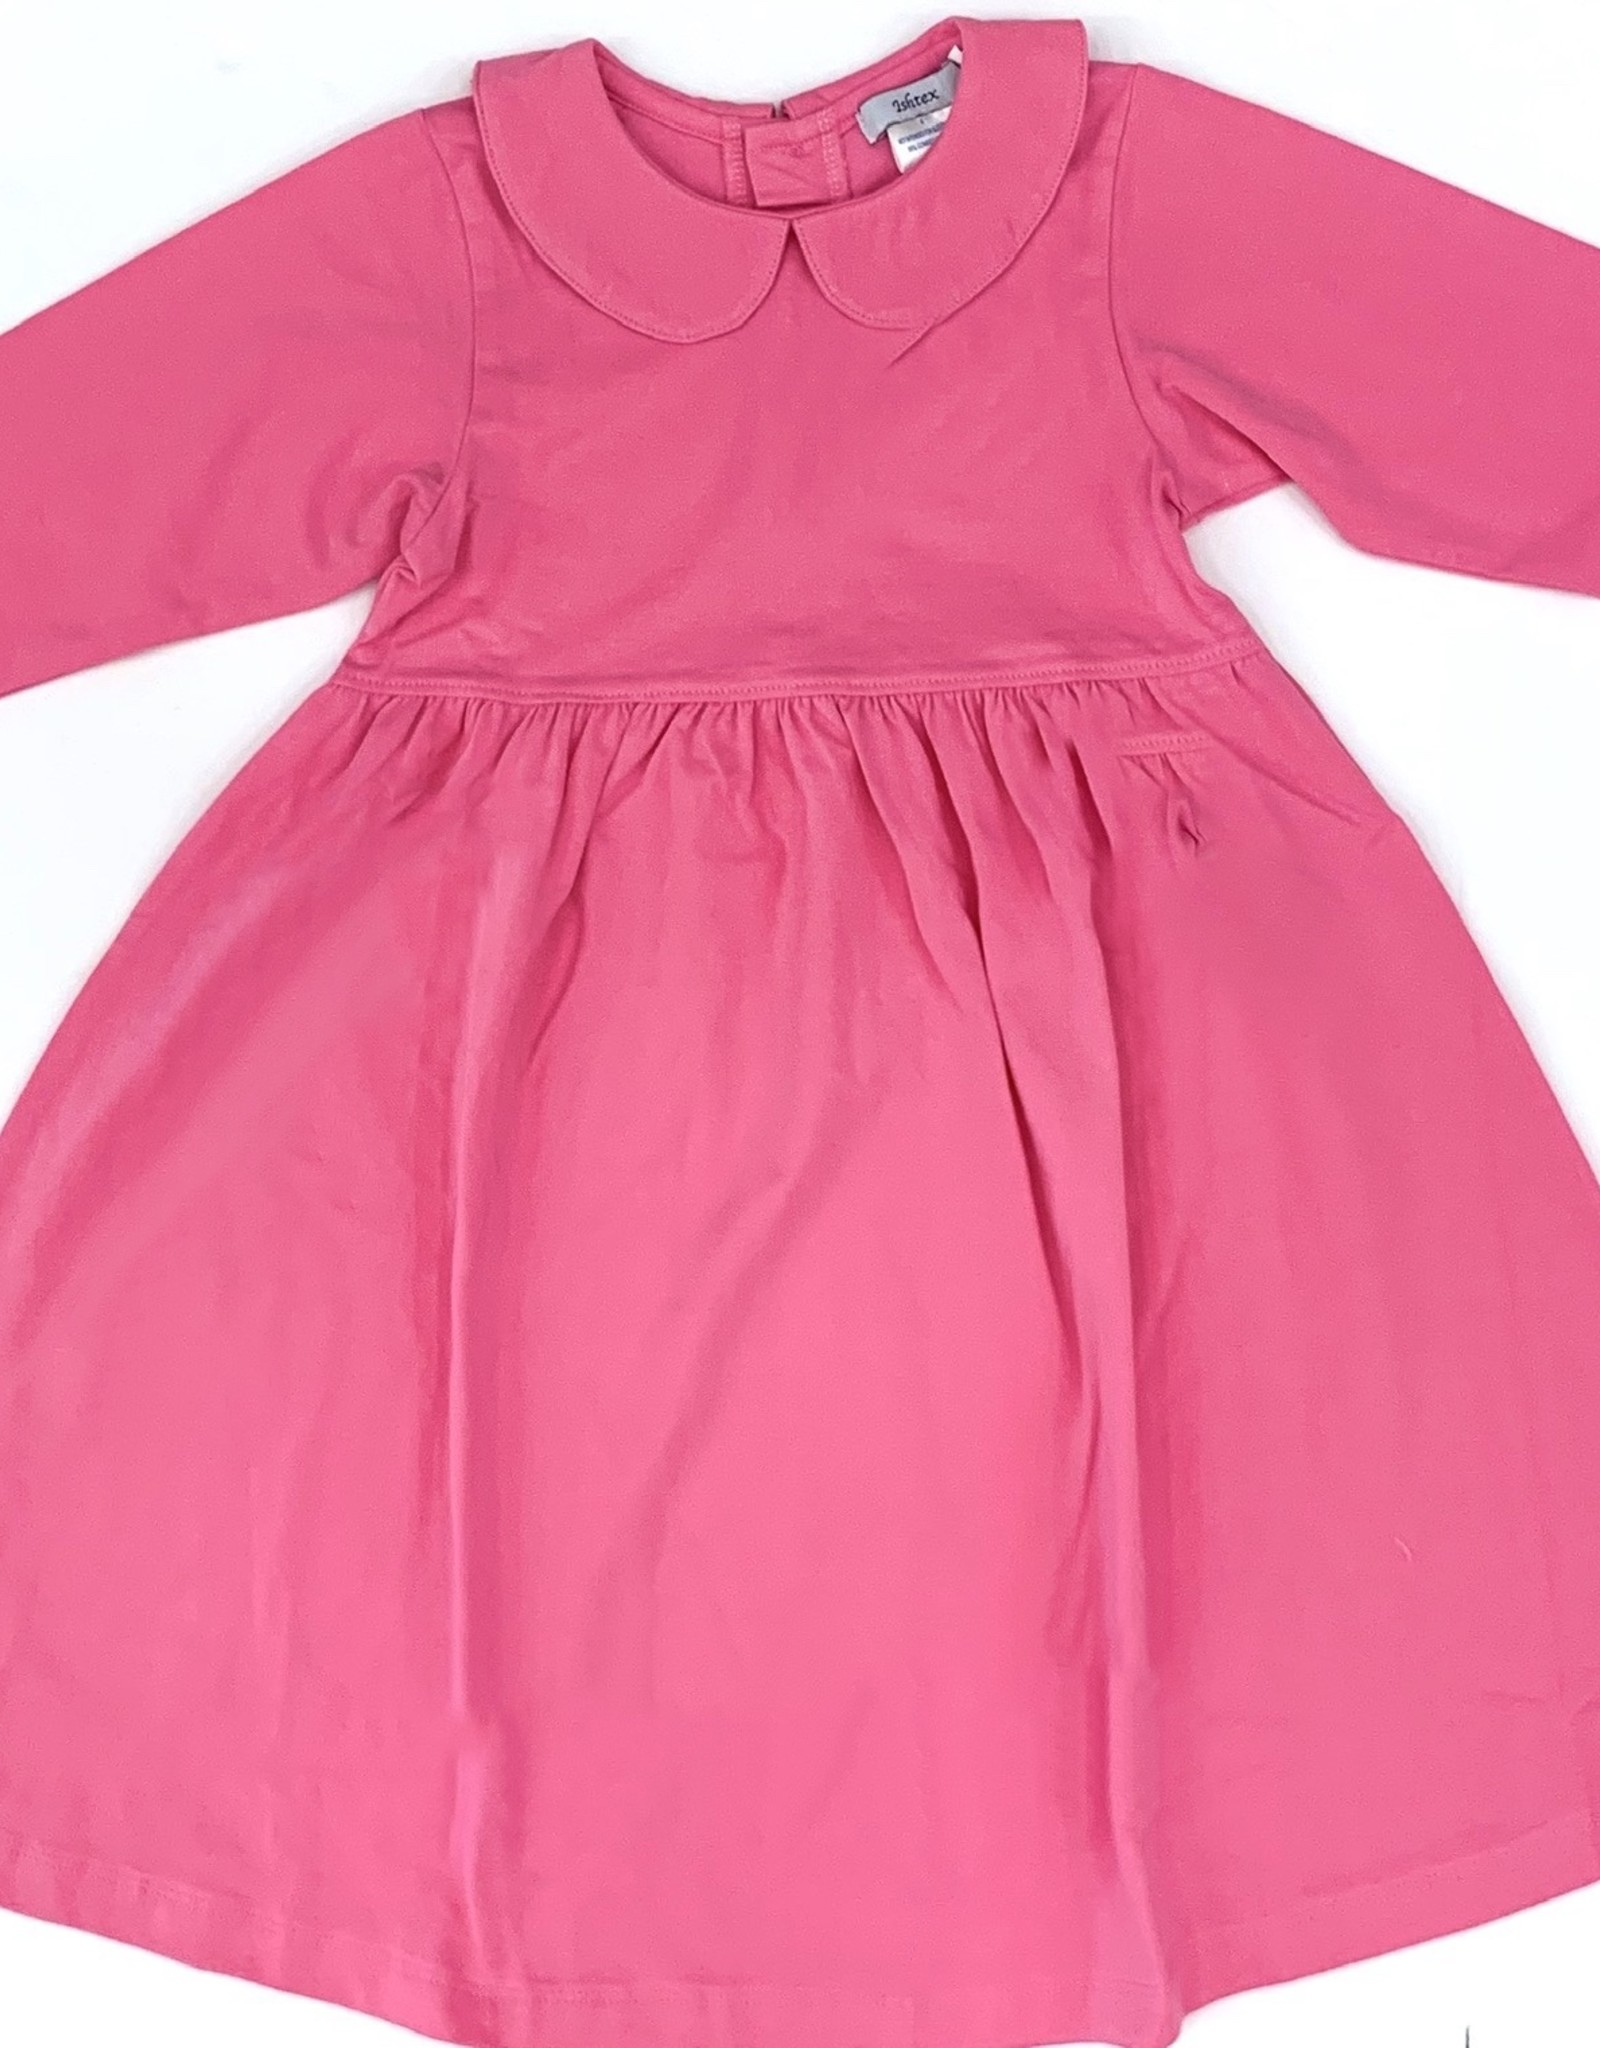 Ishtex Pink Empire Dress